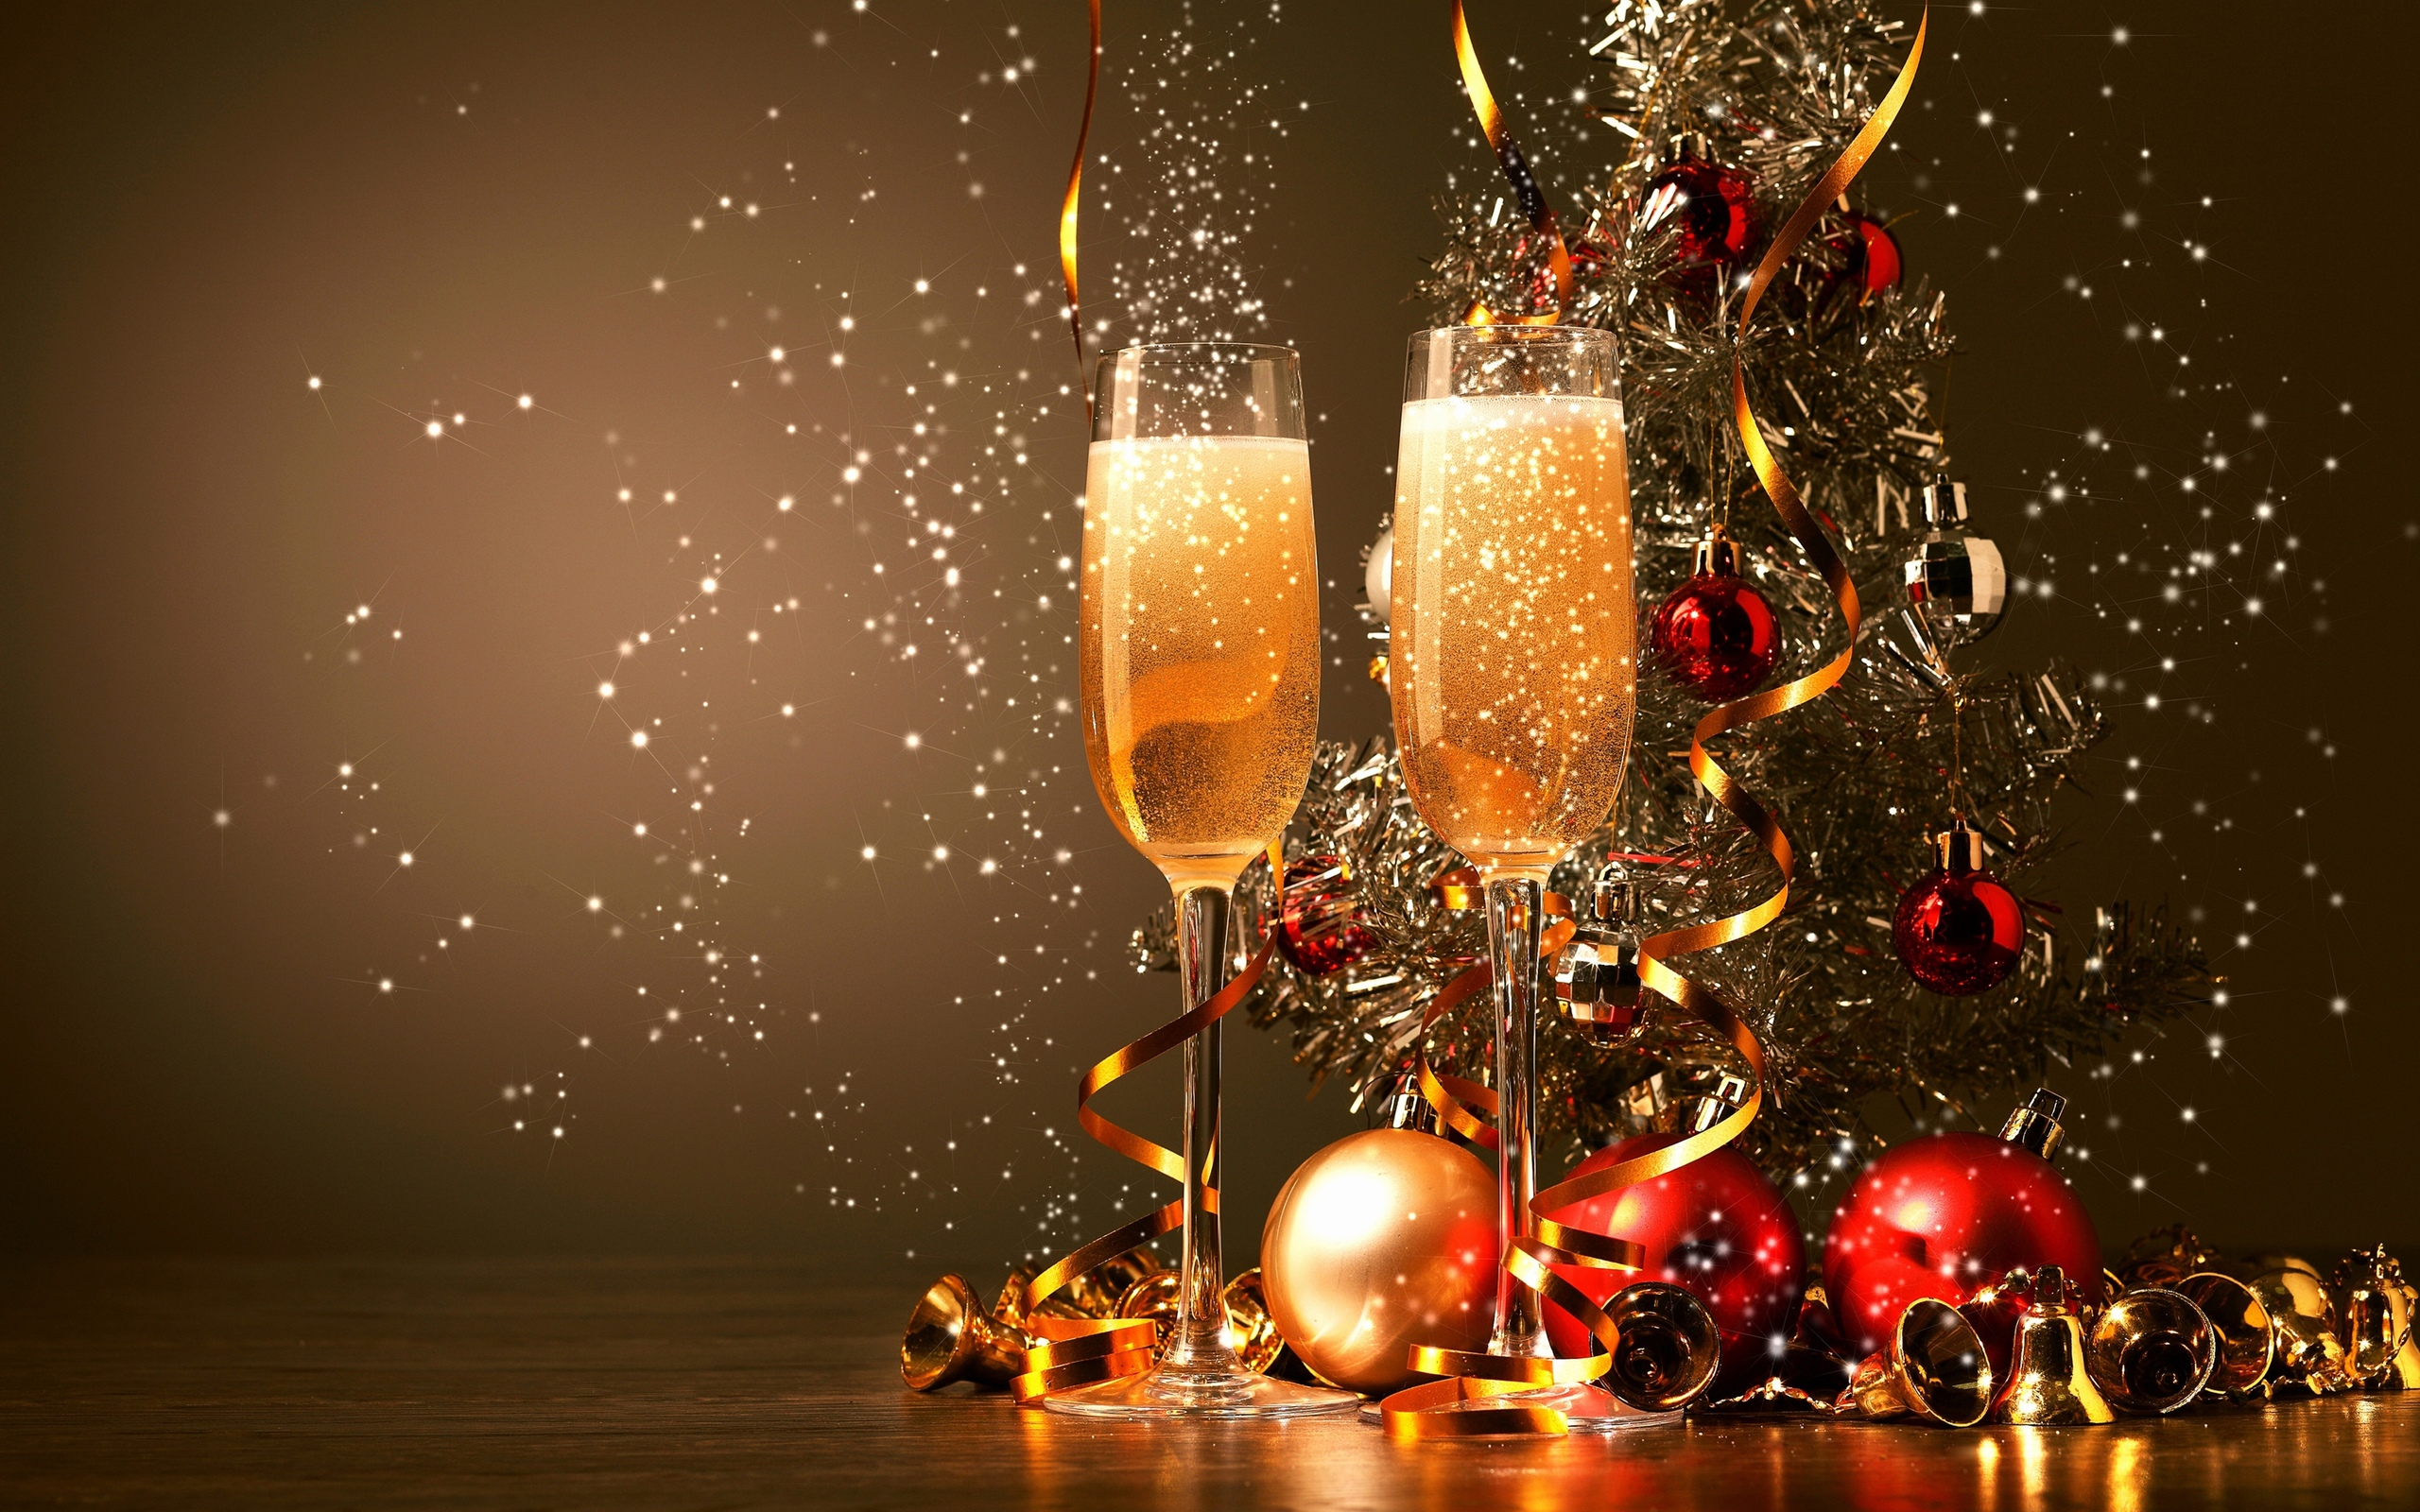 Happy New Year 2016 Celebration Champagne Glasses Desktop Wallpaper 2560x1600